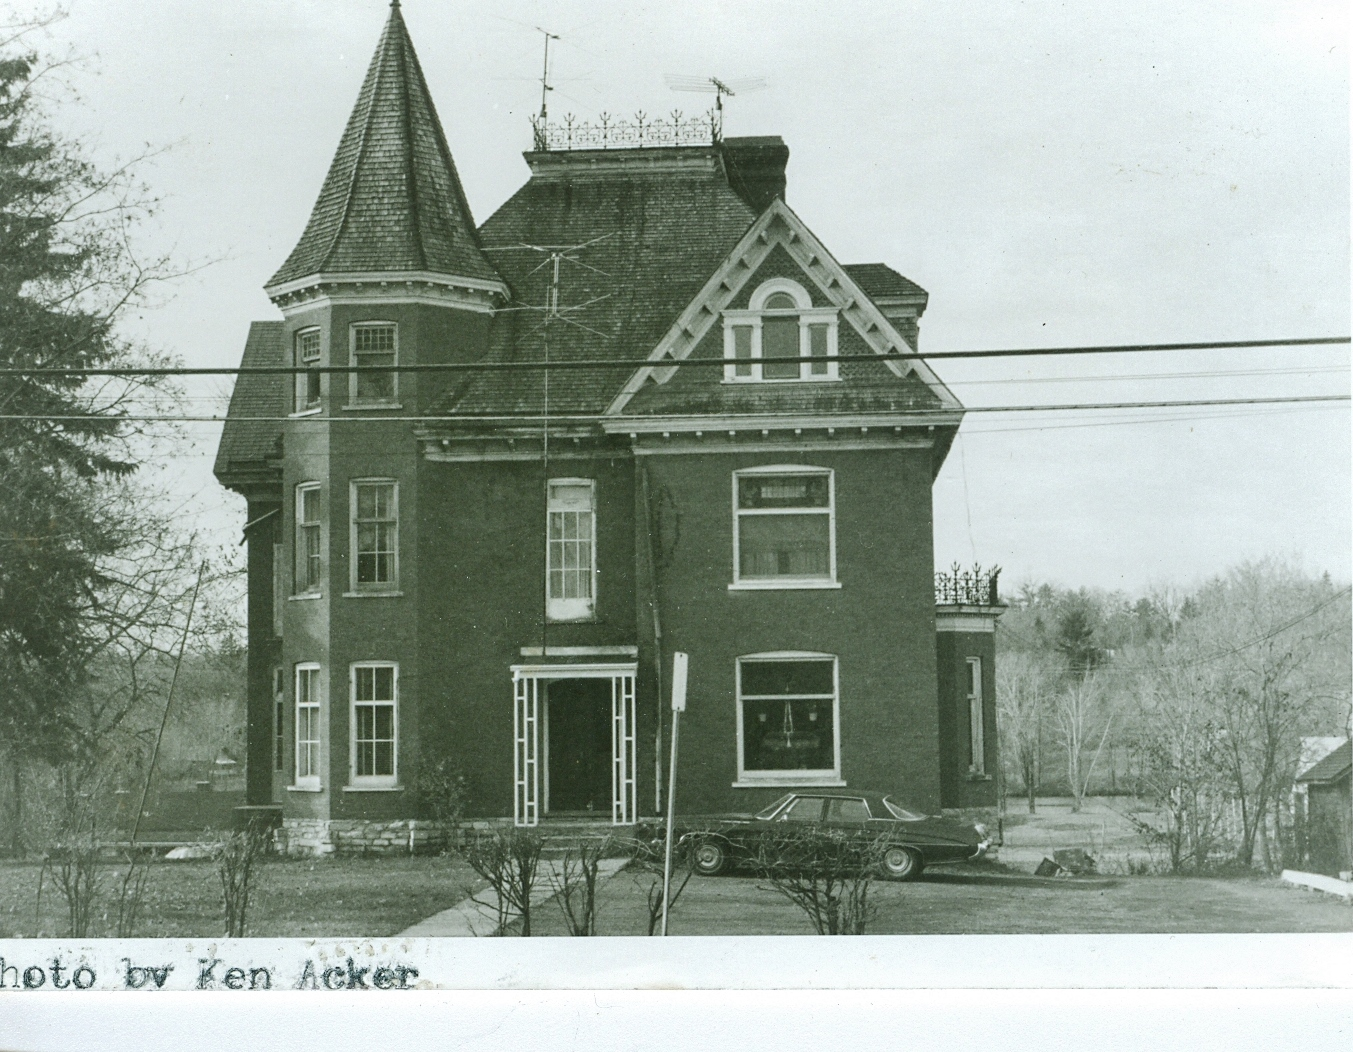 #3 - 55 forsyth st   - carscallen/young